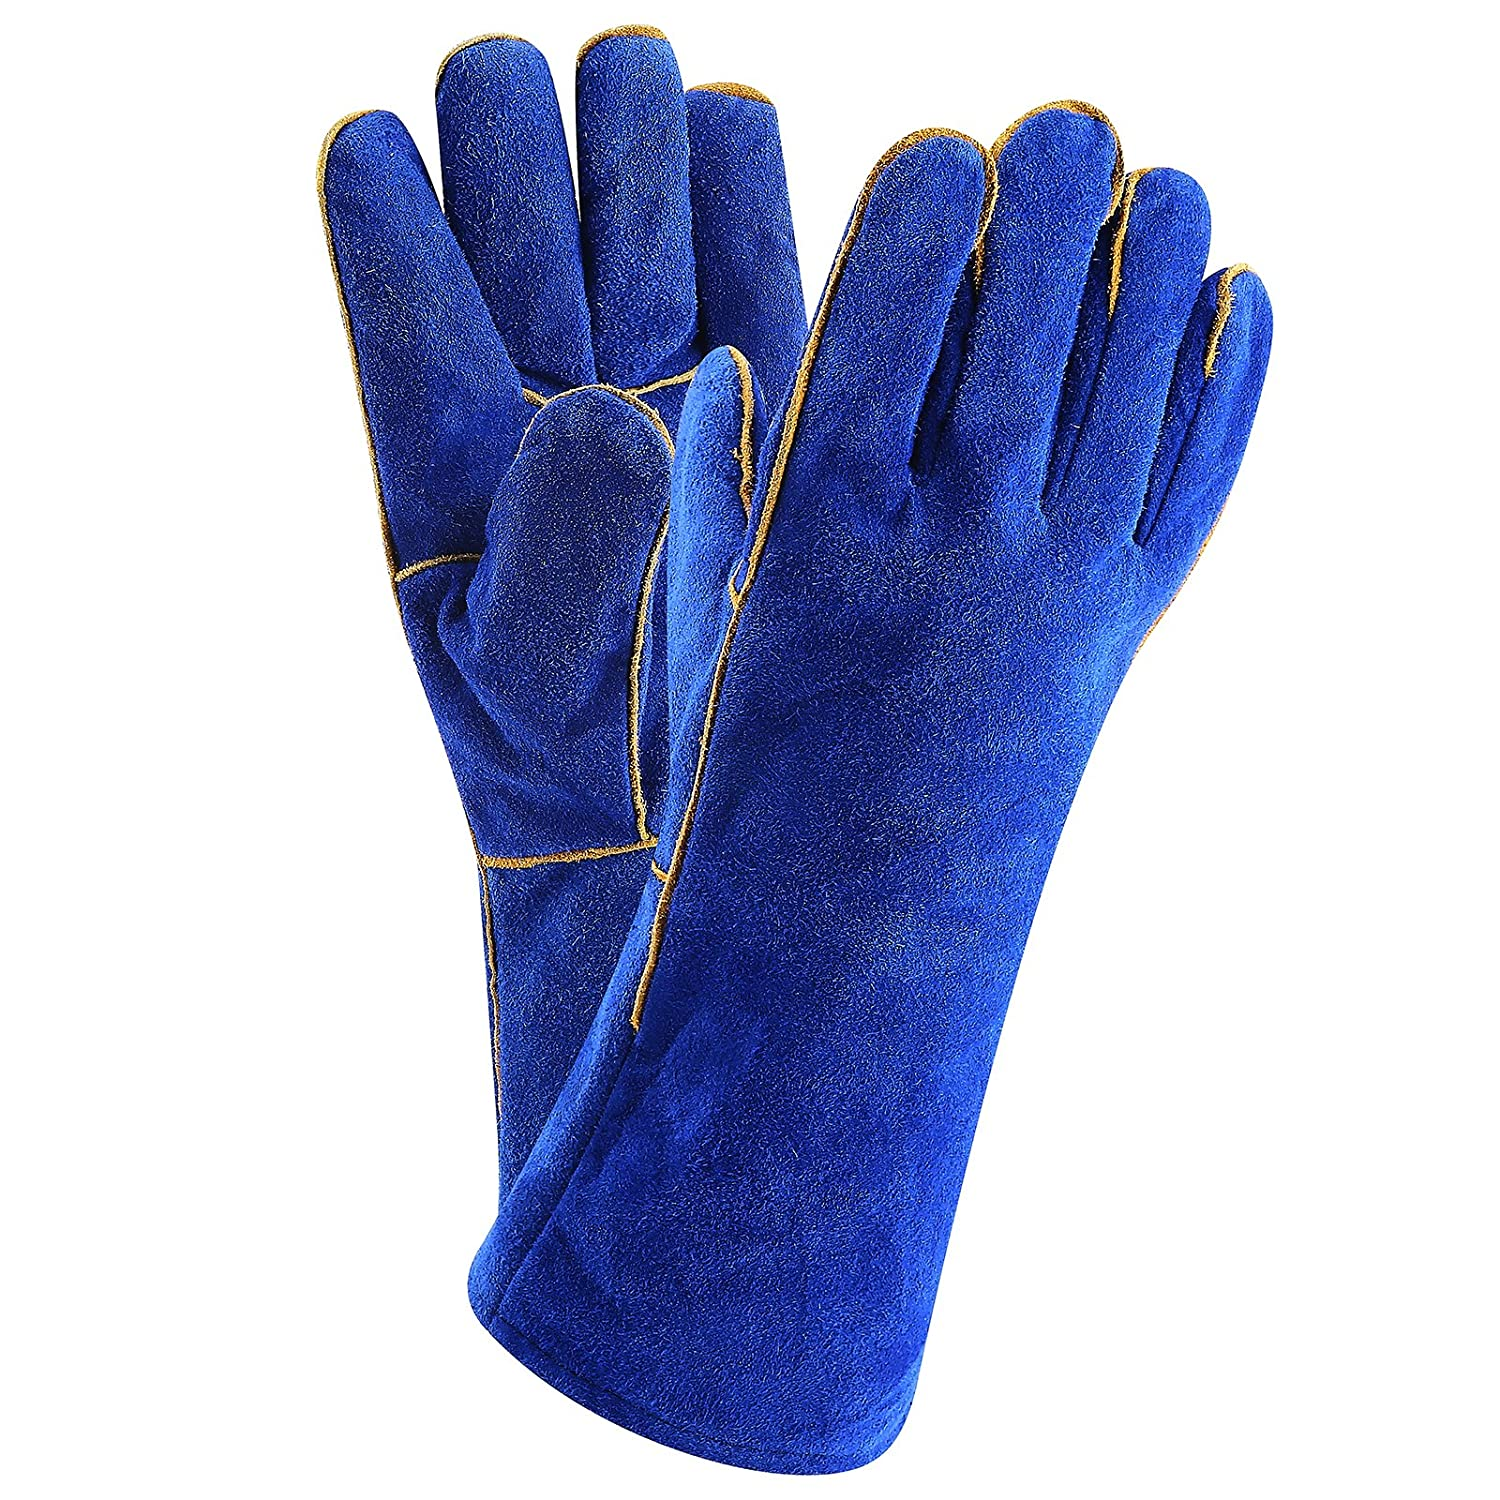 DEKO Welding Gloves 14 inch Leather Forge Heat Resistant Welding Glove for Mig Tig Welder BBQ Furnace Camping Stove Fireplace and More Blue